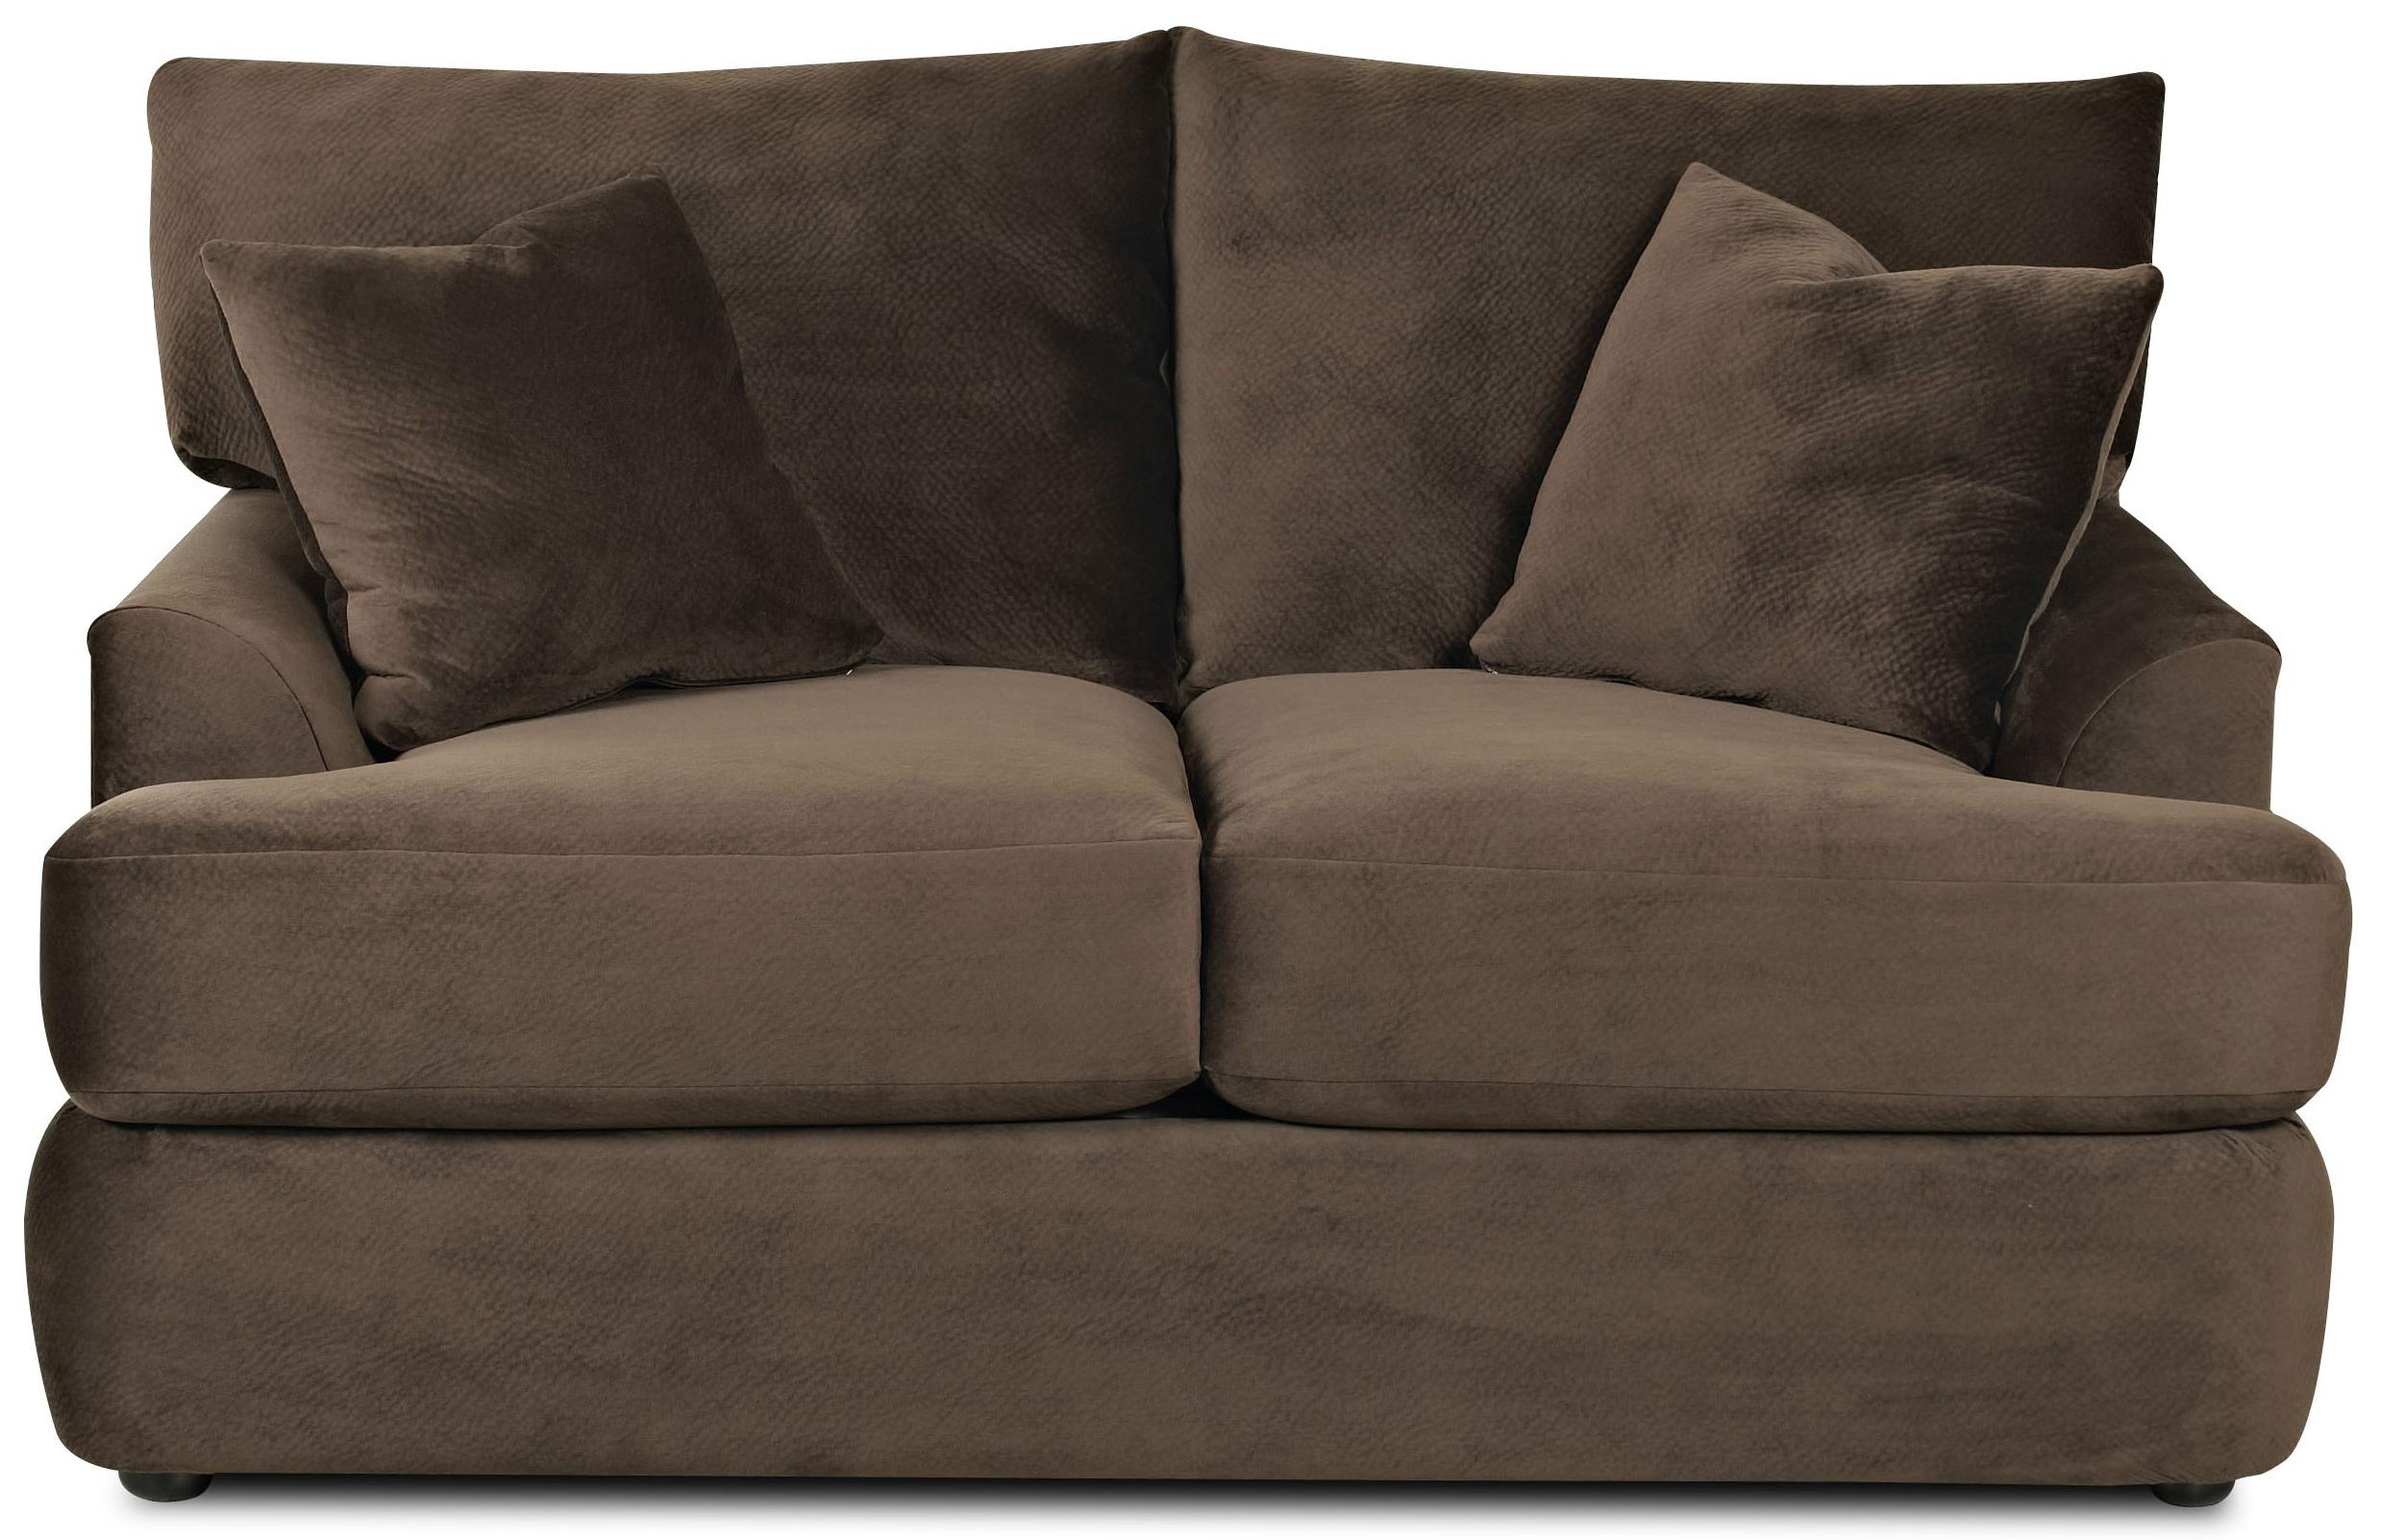 Findley Loveseat by Klaussner at Johnny Janosik